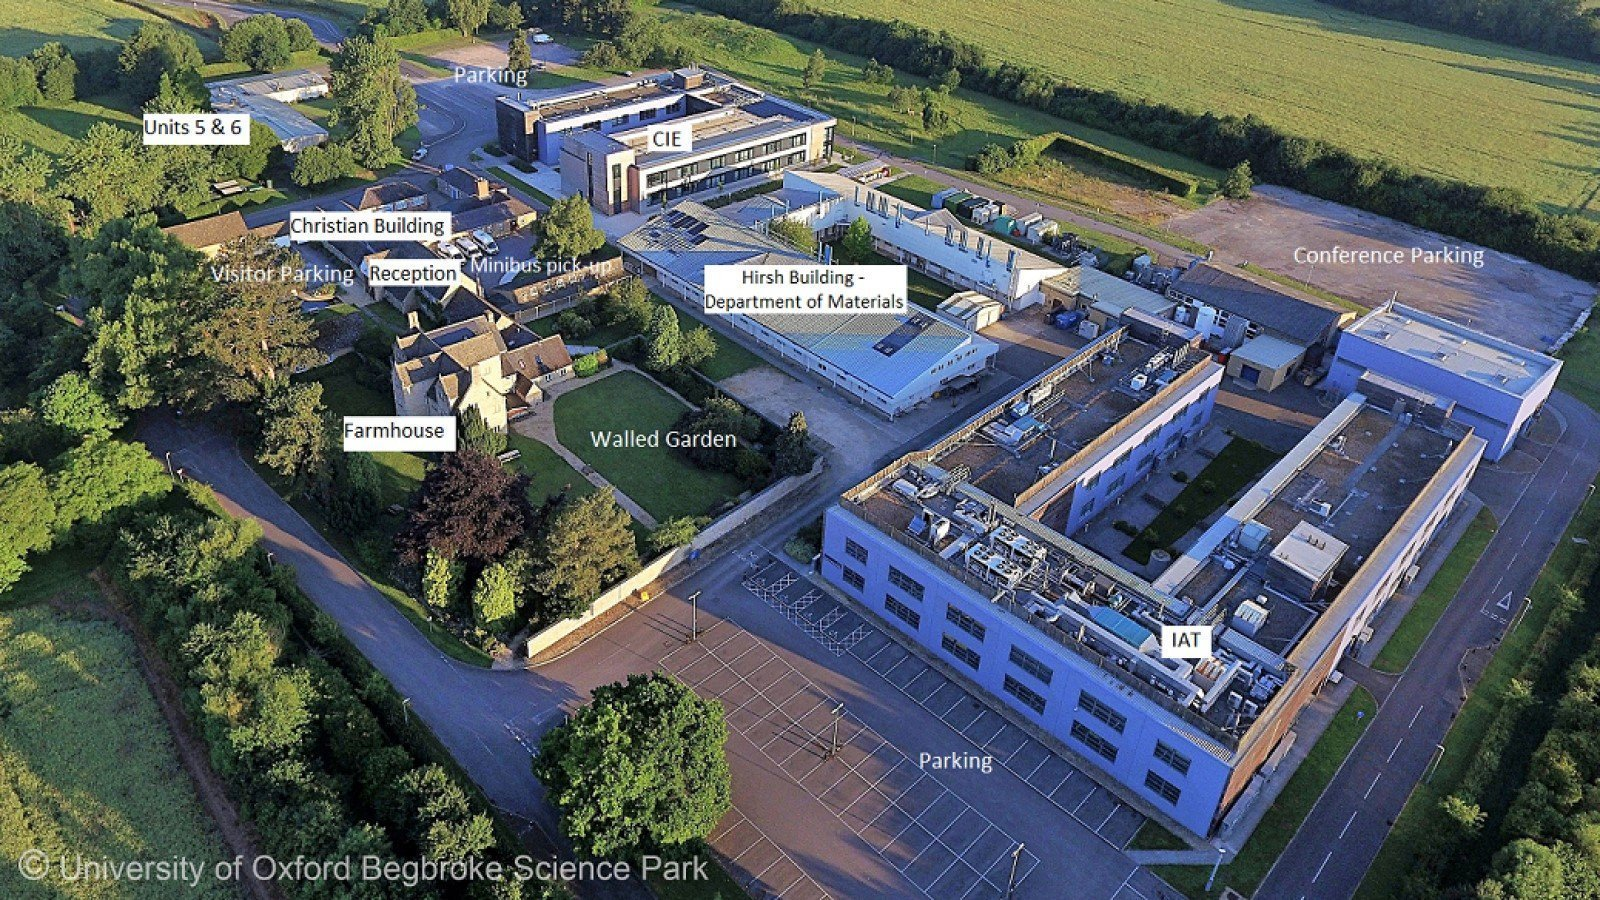 Legal & General to develop major science and innovation district with University of Oxford